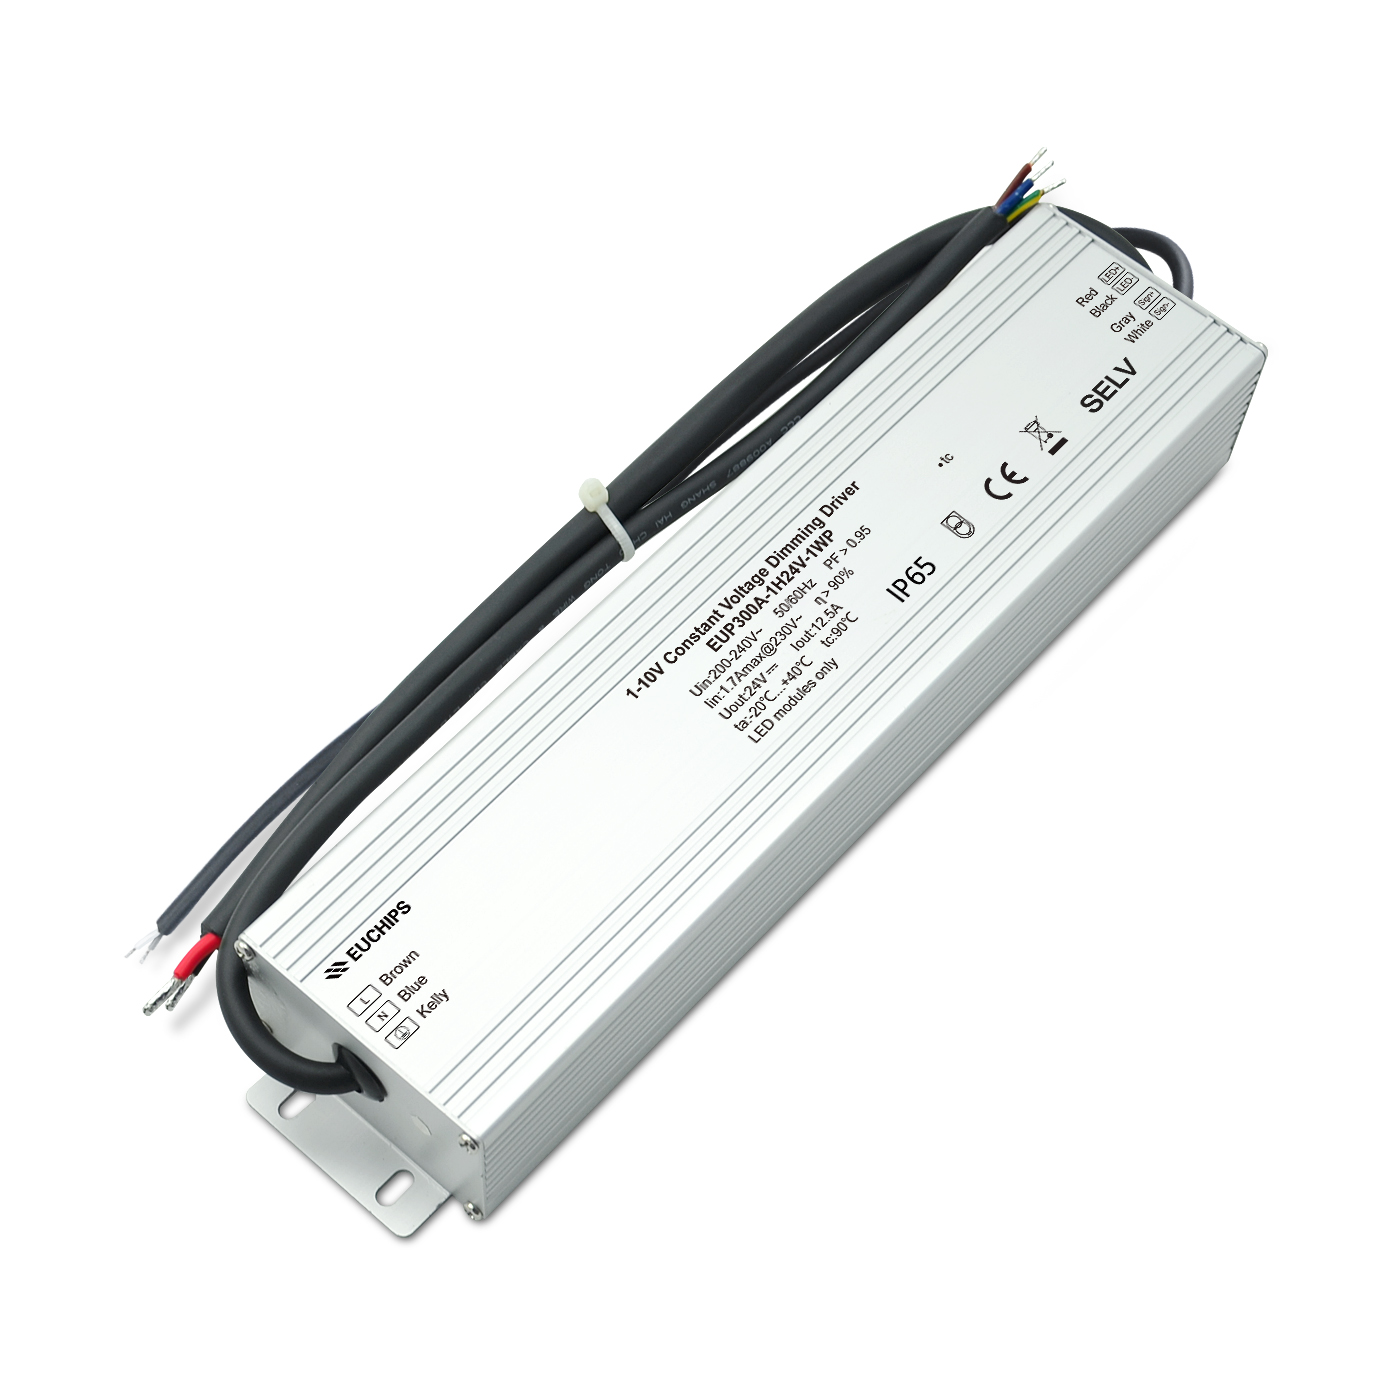 Competitive Price for 12v Dc Input Led Driver - 300w 0-10v constant voltage dimmable driver EUP300A-1H24V-0WP – Euchips Featured Image